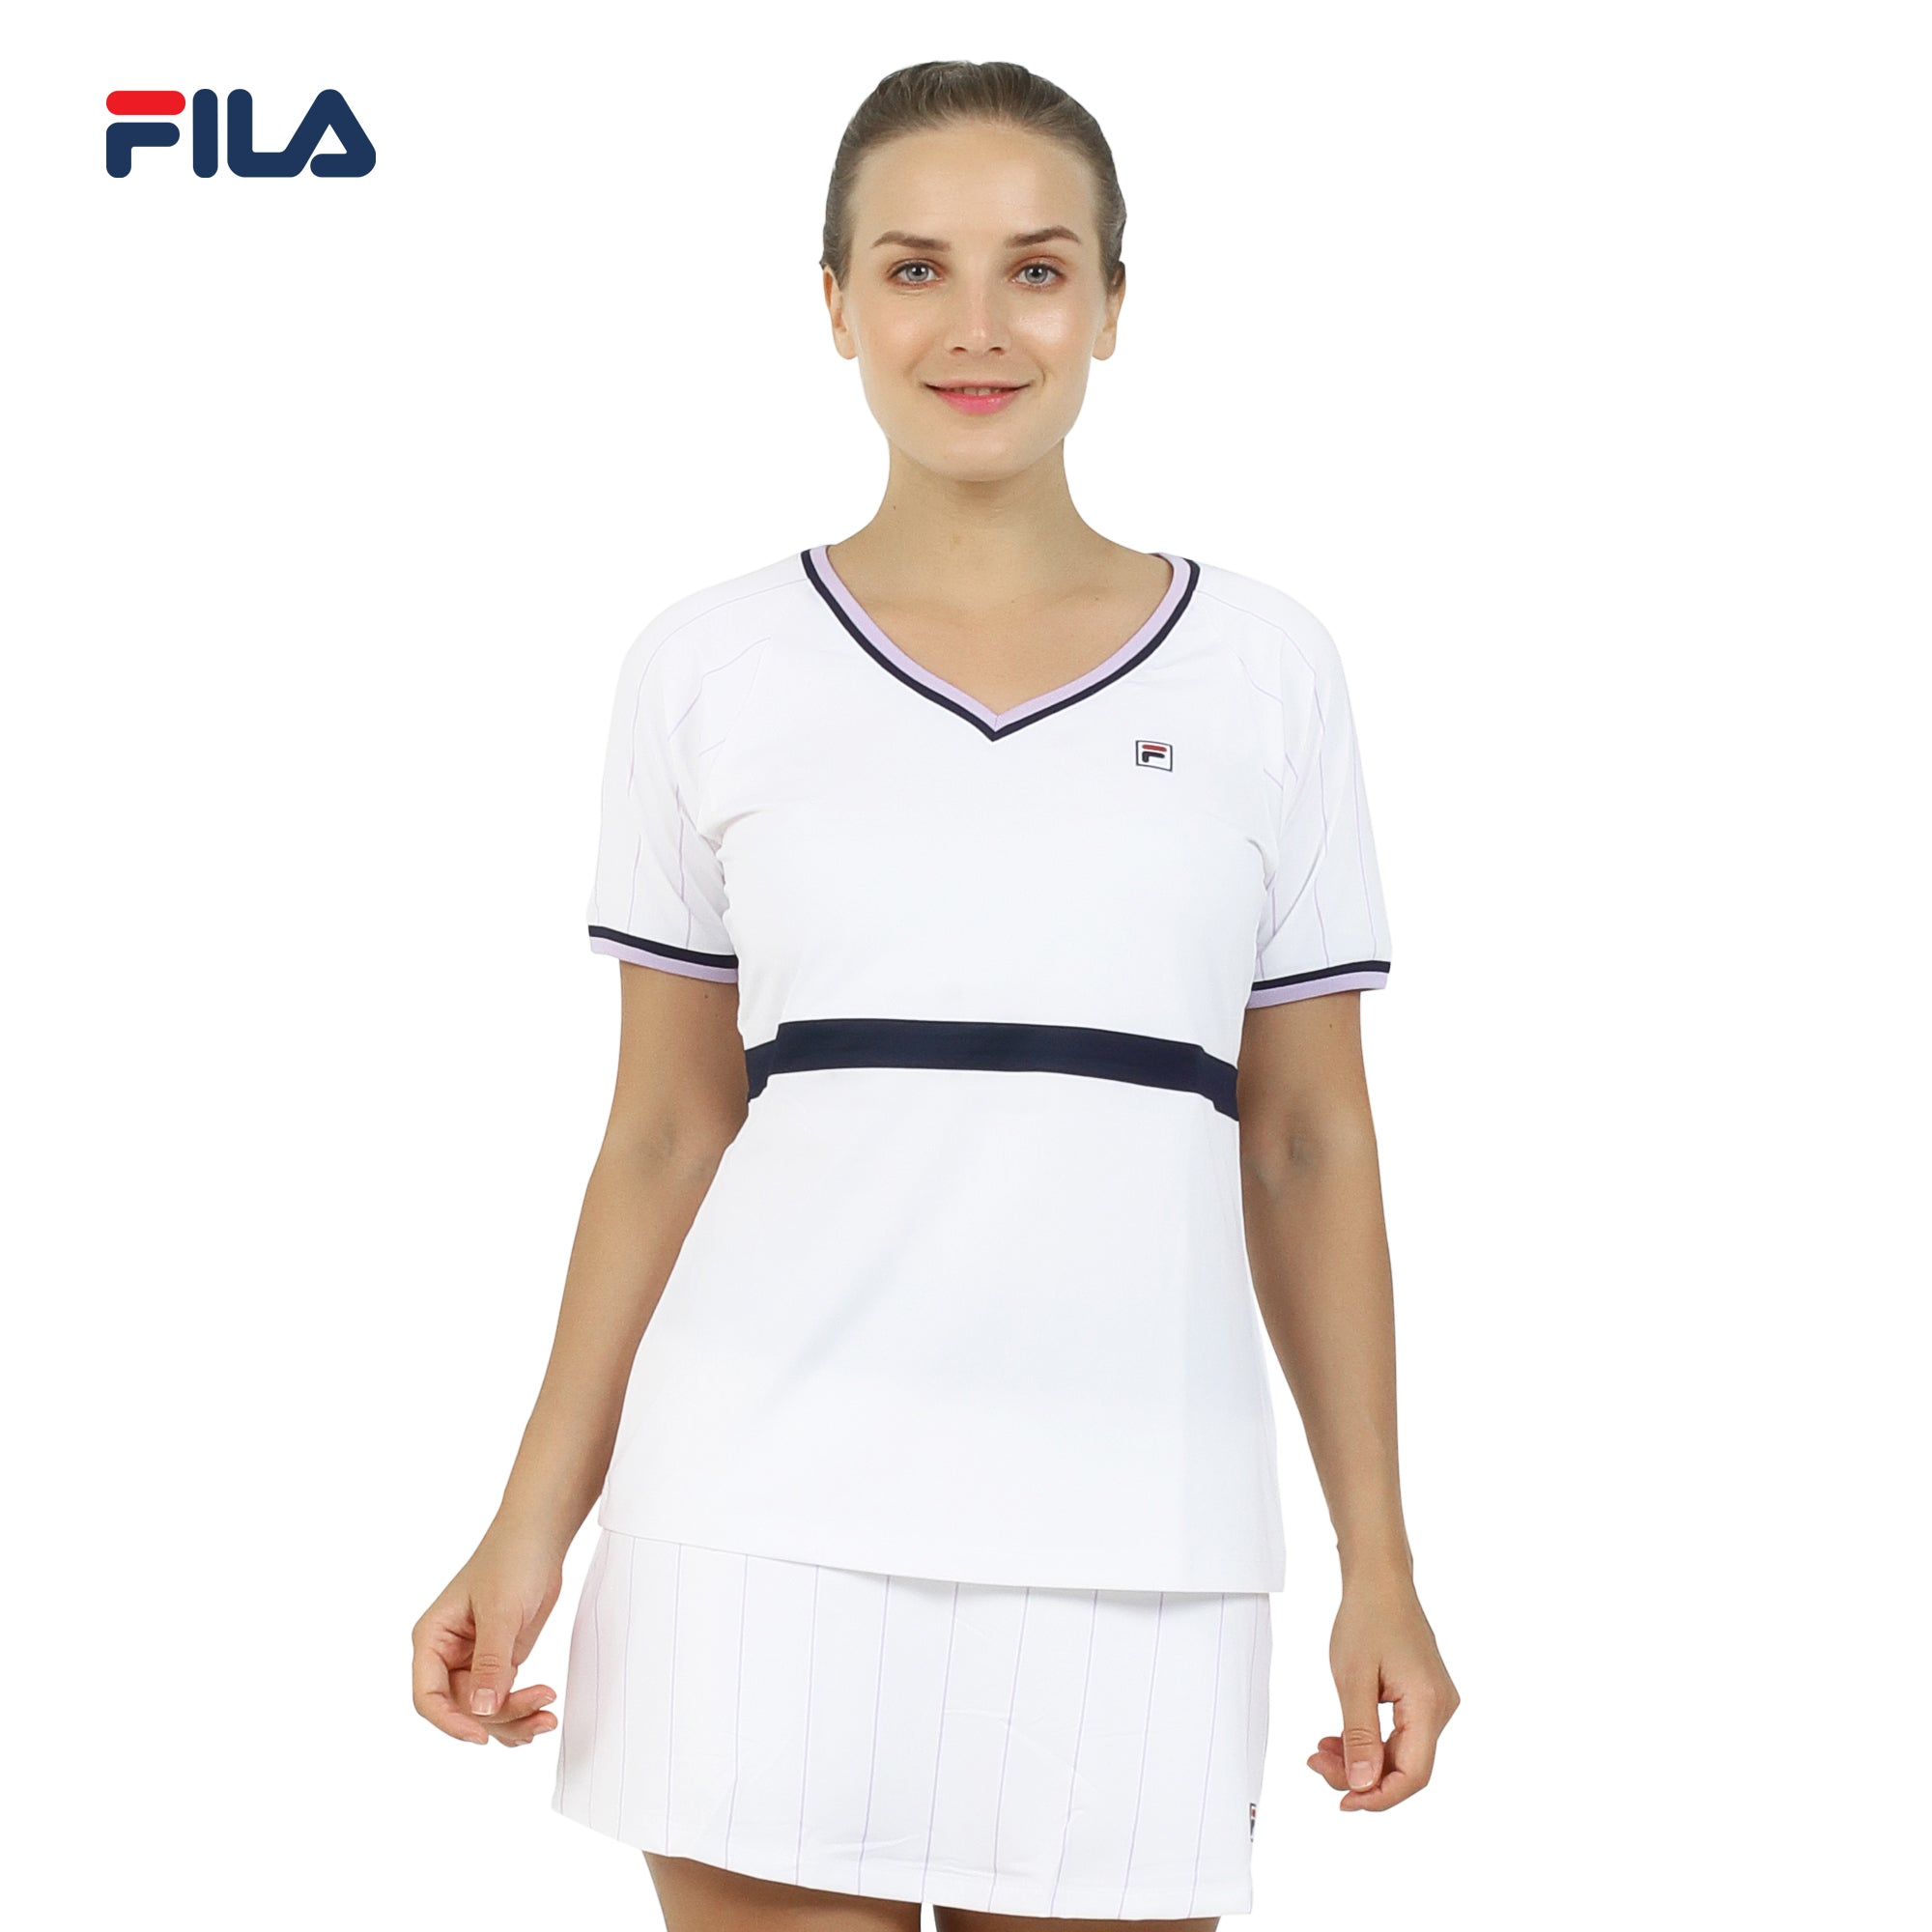 Fila Women's LS Spandex Knitted Blouse